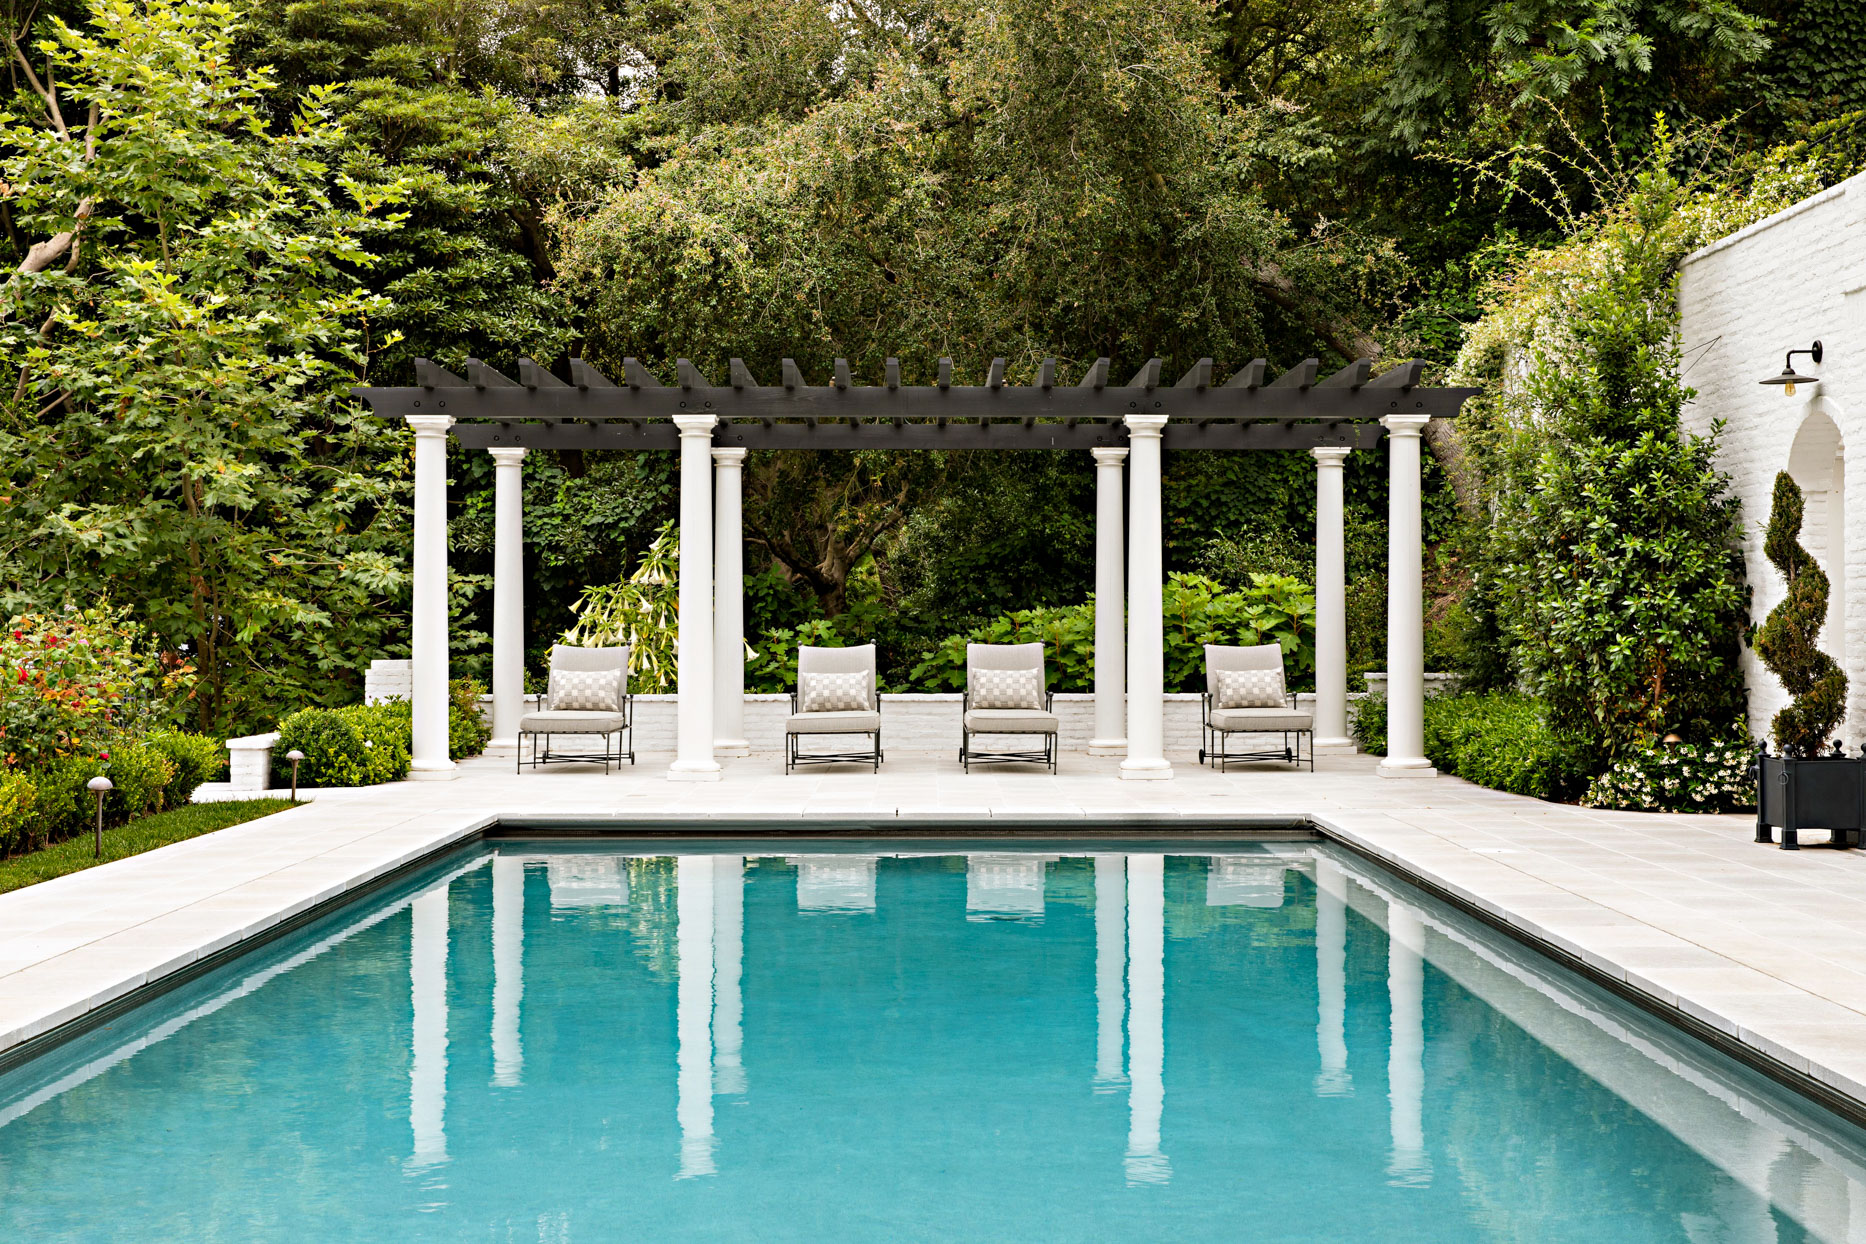 outdoor pool with modern pagoda and greenery background